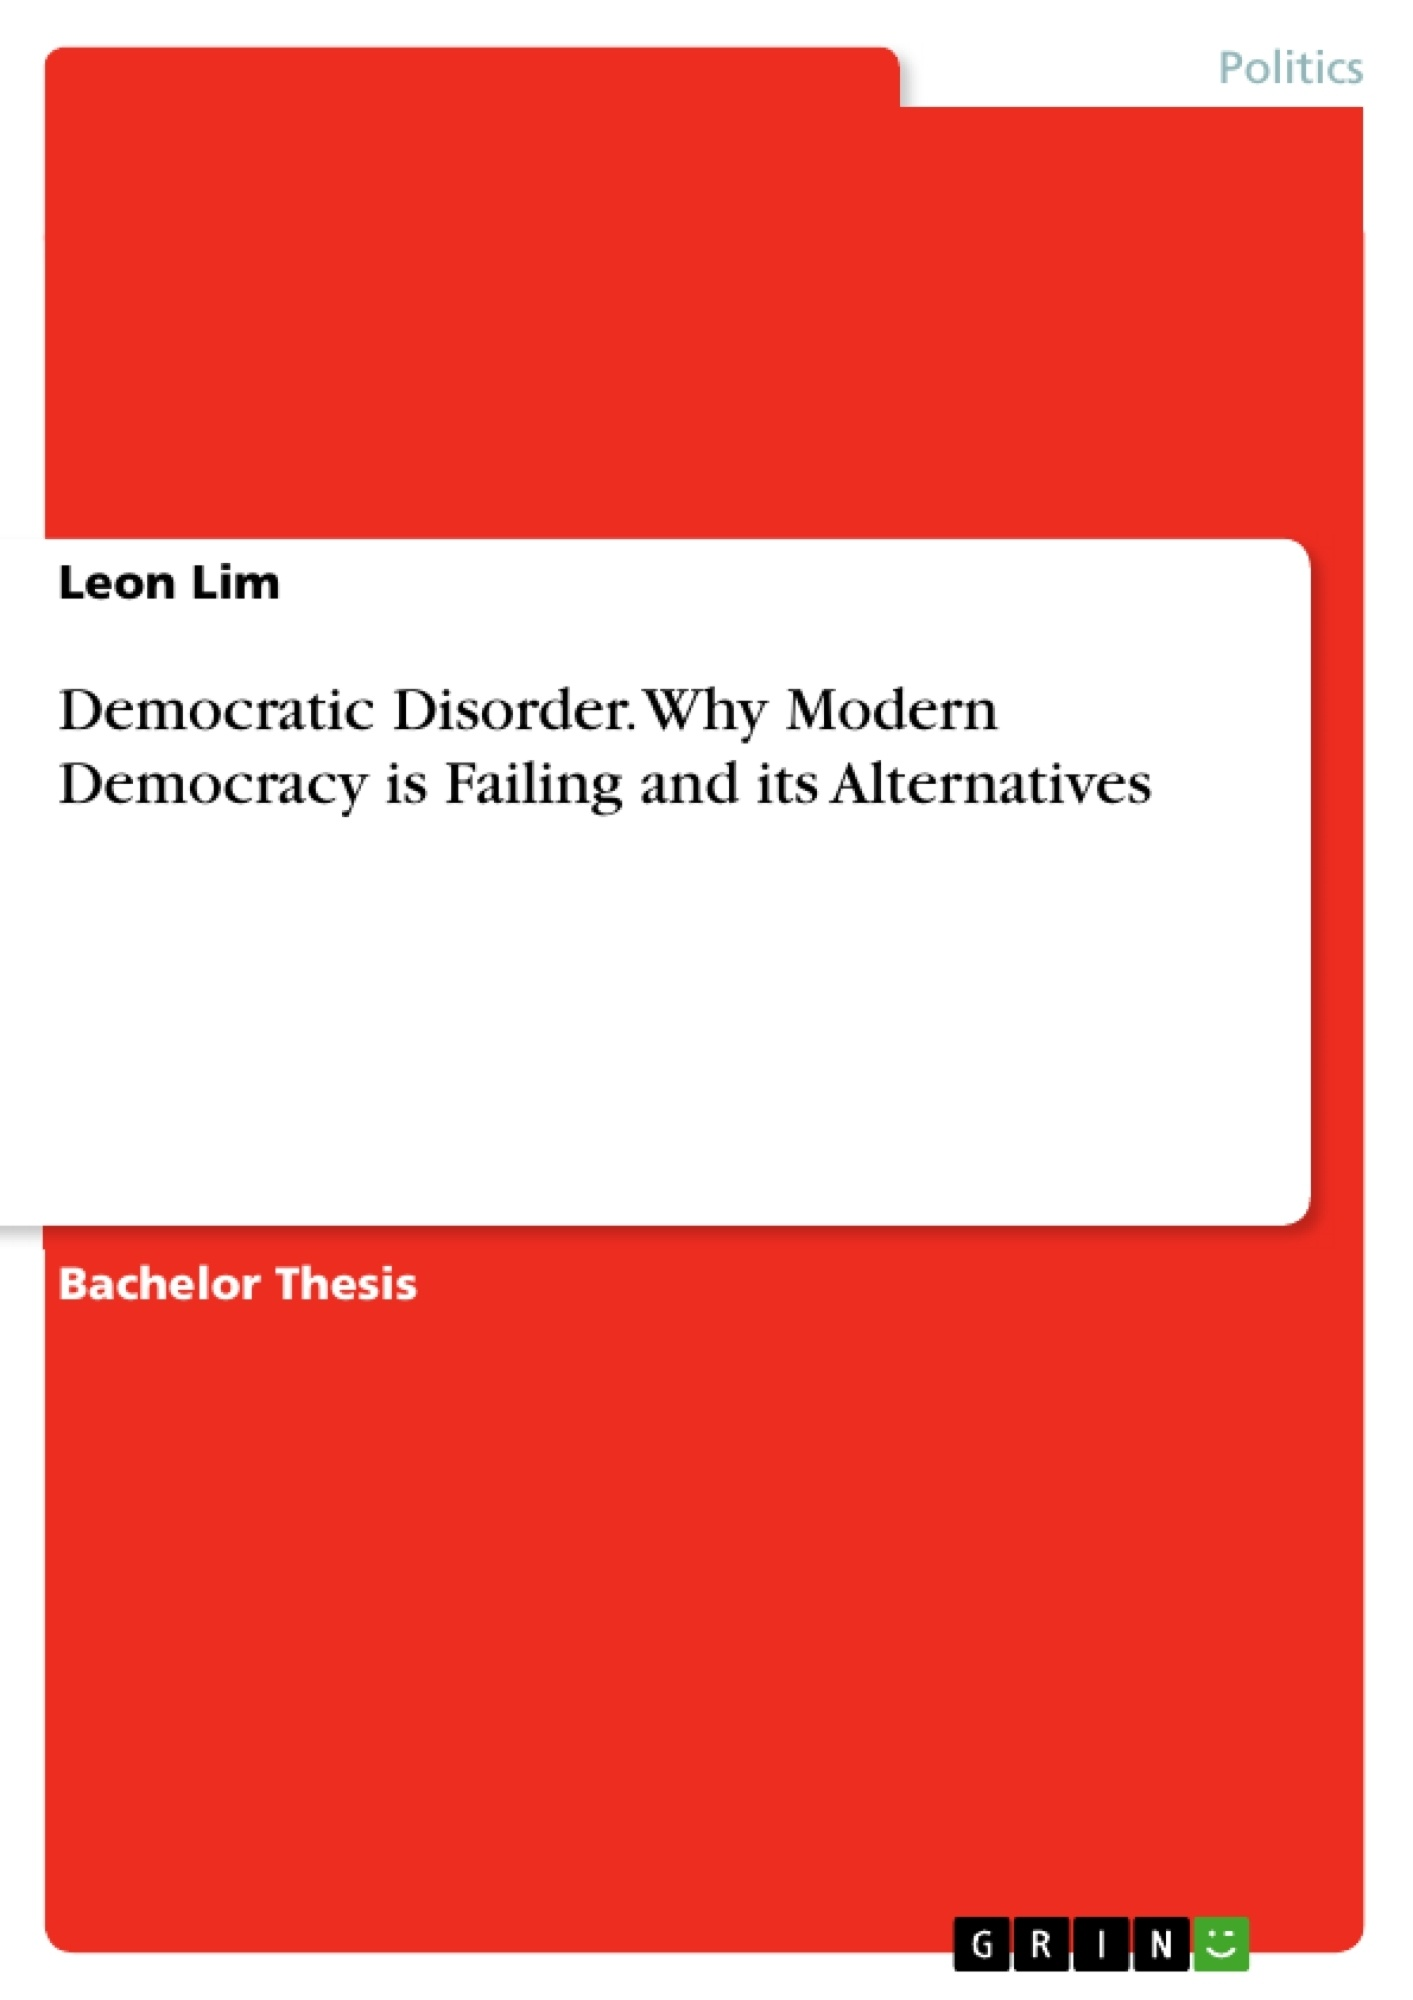 Title: Democratic Disorder. Why Modern Democracy is Failing and its Alternatives